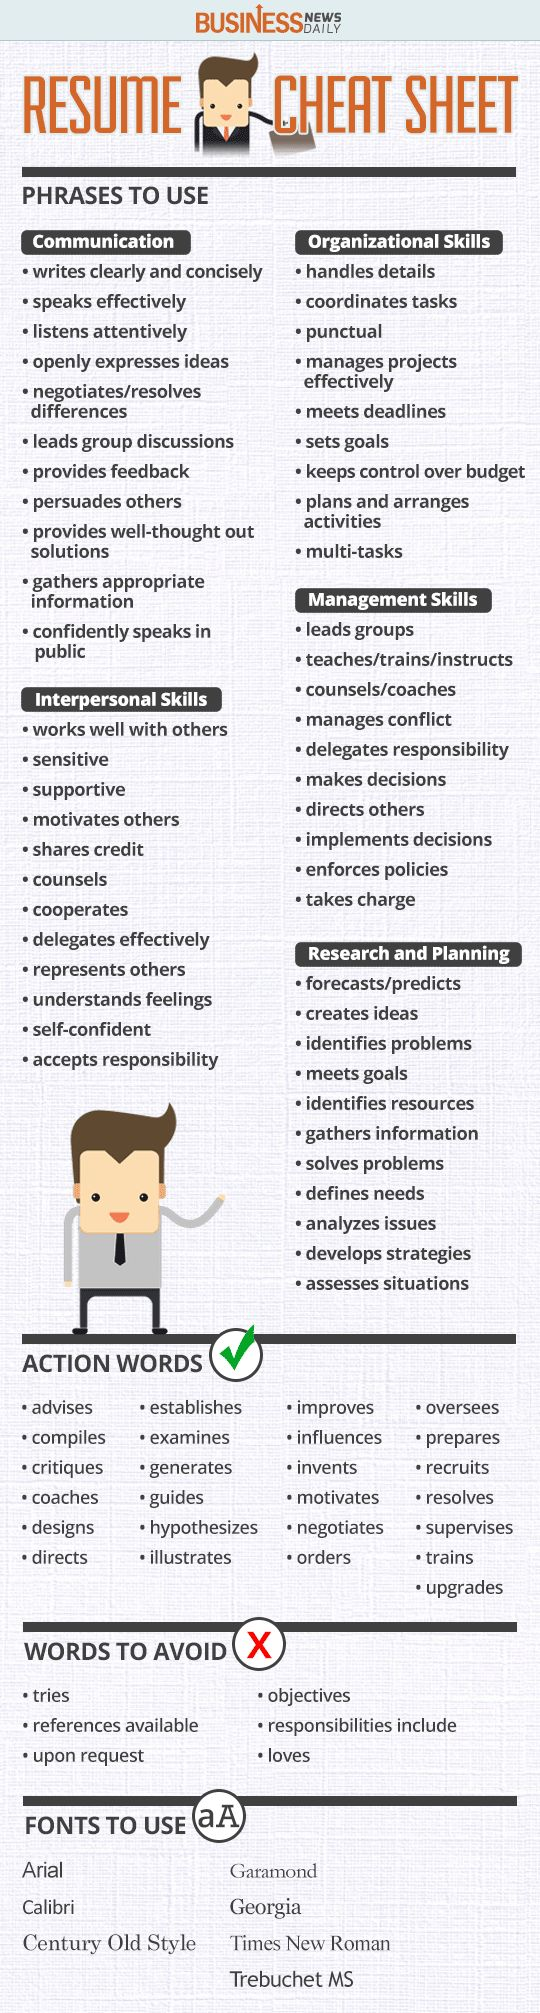 Opposenewapstandardsus  Winsome  Ideas About Resume On Pinterest  Cv Format Resume  With Goodlooking Resume Cheat Sheet Infographic Andrews Almost Done With A Complete Unit On Employment Which With Captivating Medical Coder Resume Also How To Create A Job Resume In Addition Resume For Caregiver And Standard Resume Template As Well As Job Objective On Resume Additionally Resume For Sales Position From Pinterestcom With Opposenewapstandardsus  Goodlooking  Ideas About Resume On Pinterest  Cv Format Resume  With Captivating Resume Cheat Sheet Infographic Andrews Almost Done With A Complete Unit On Employment Which And Winsome Medical Coder Resume Also How To Create A Job Resume In Addition Resume For Caregiver From Pinterestcom